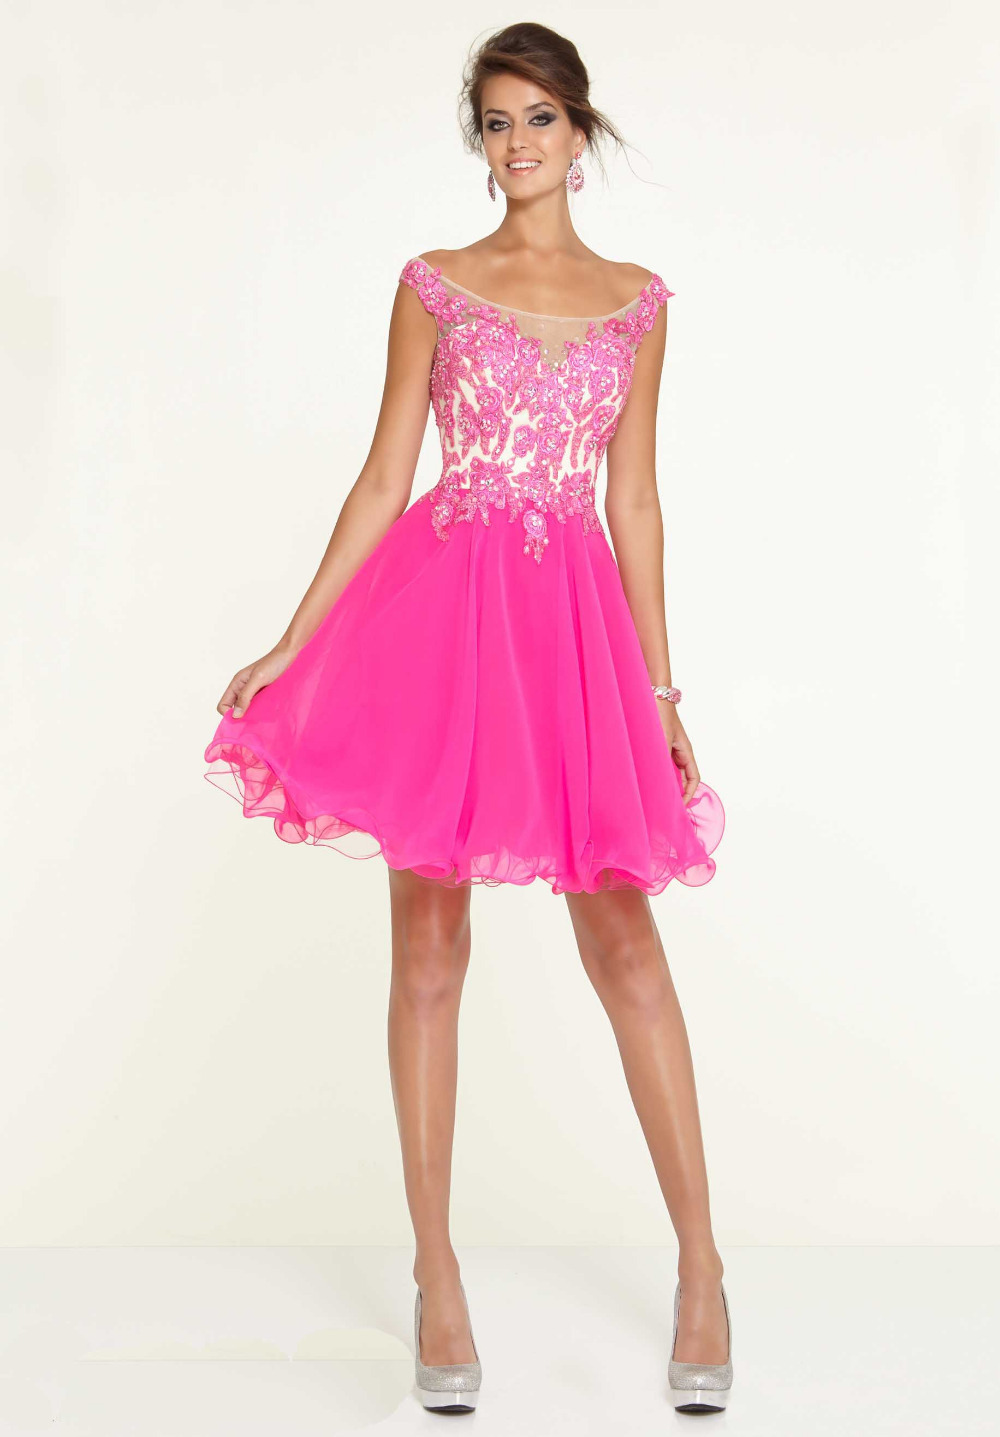 Pink Dresses For Homecoming